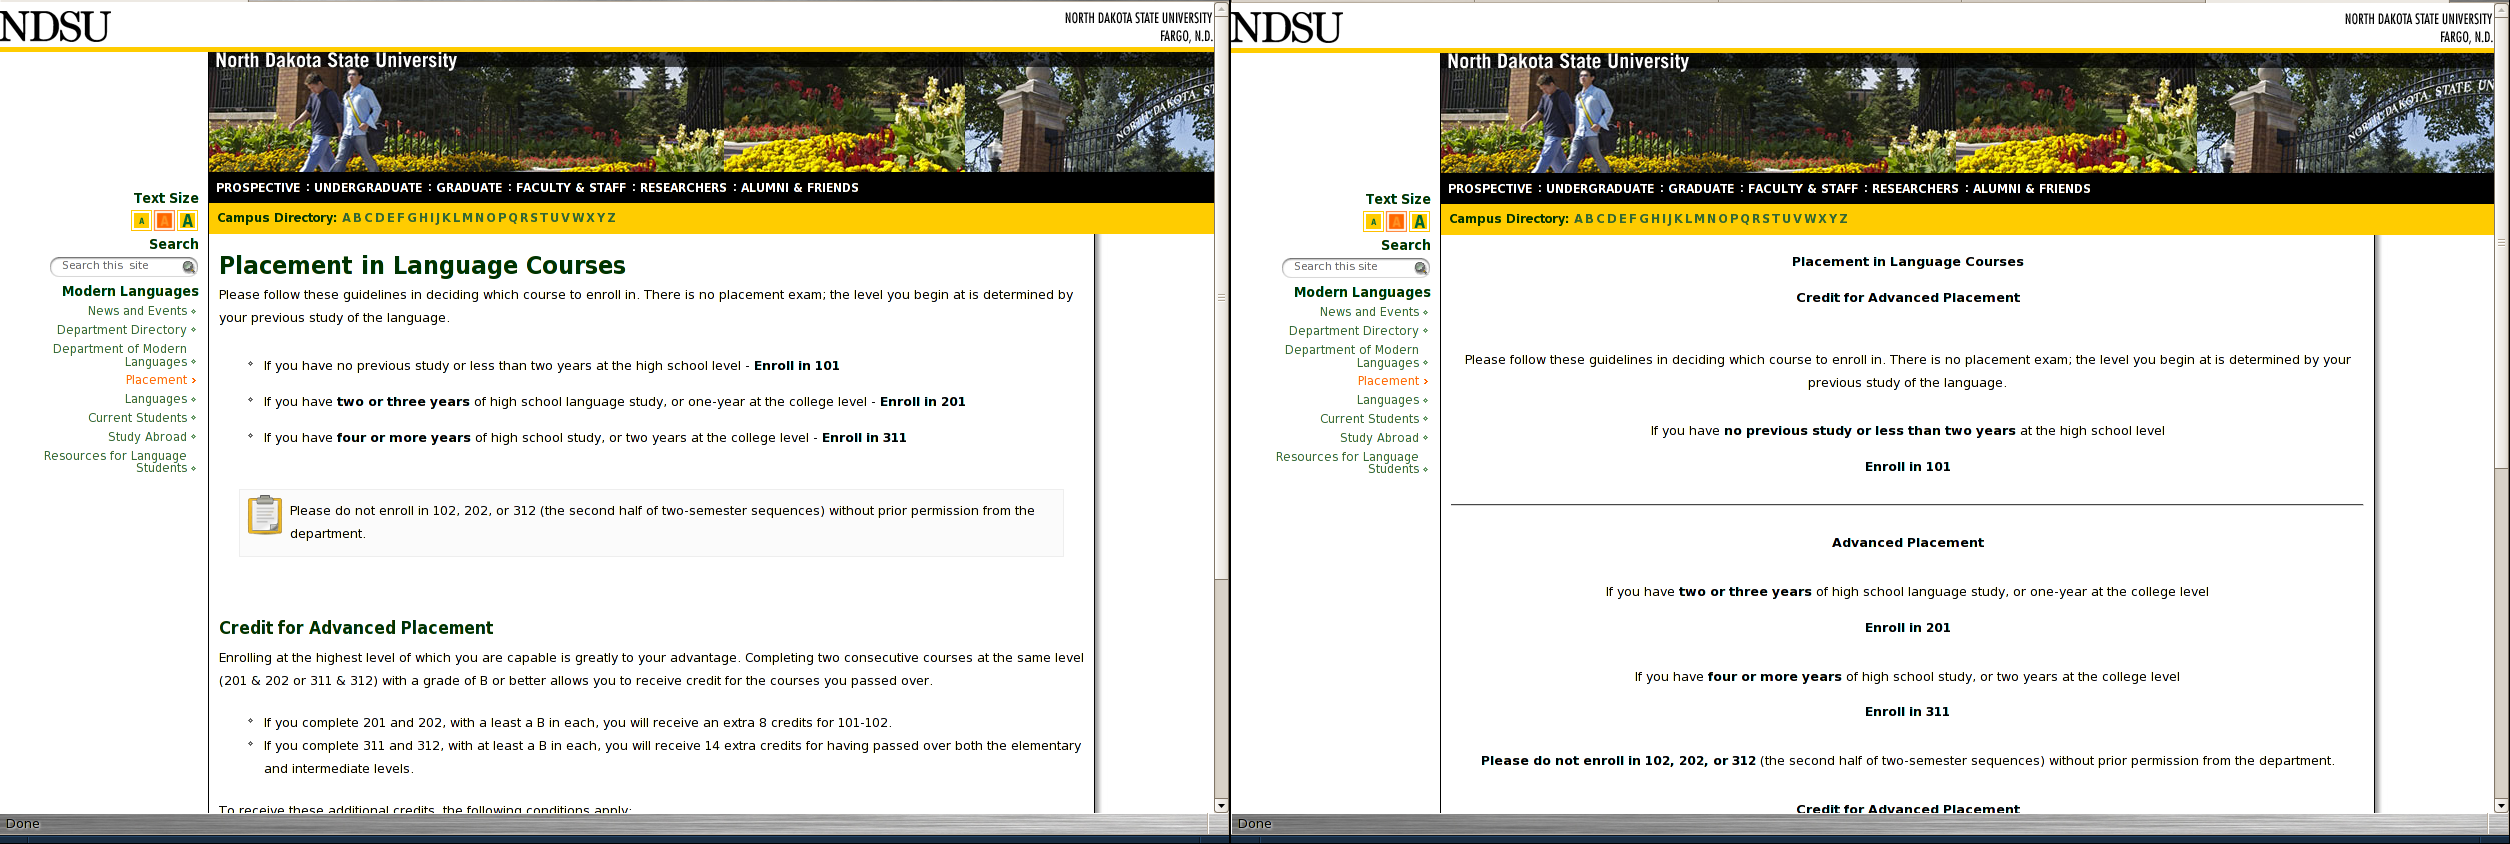 Example Of Improving A Home Page CMS NDSU